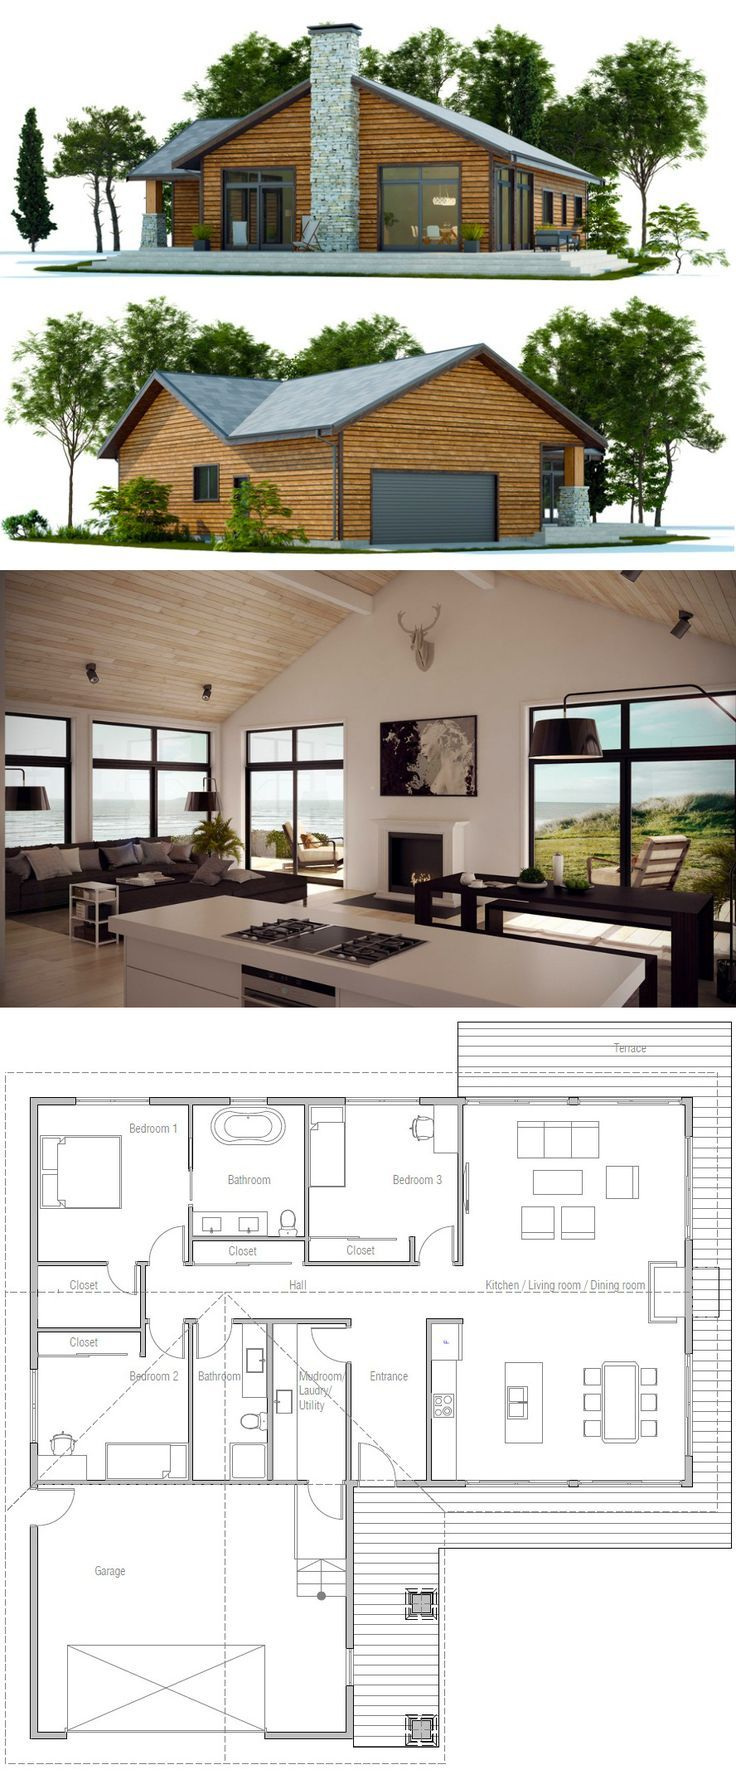 Like the exterior style and the floor